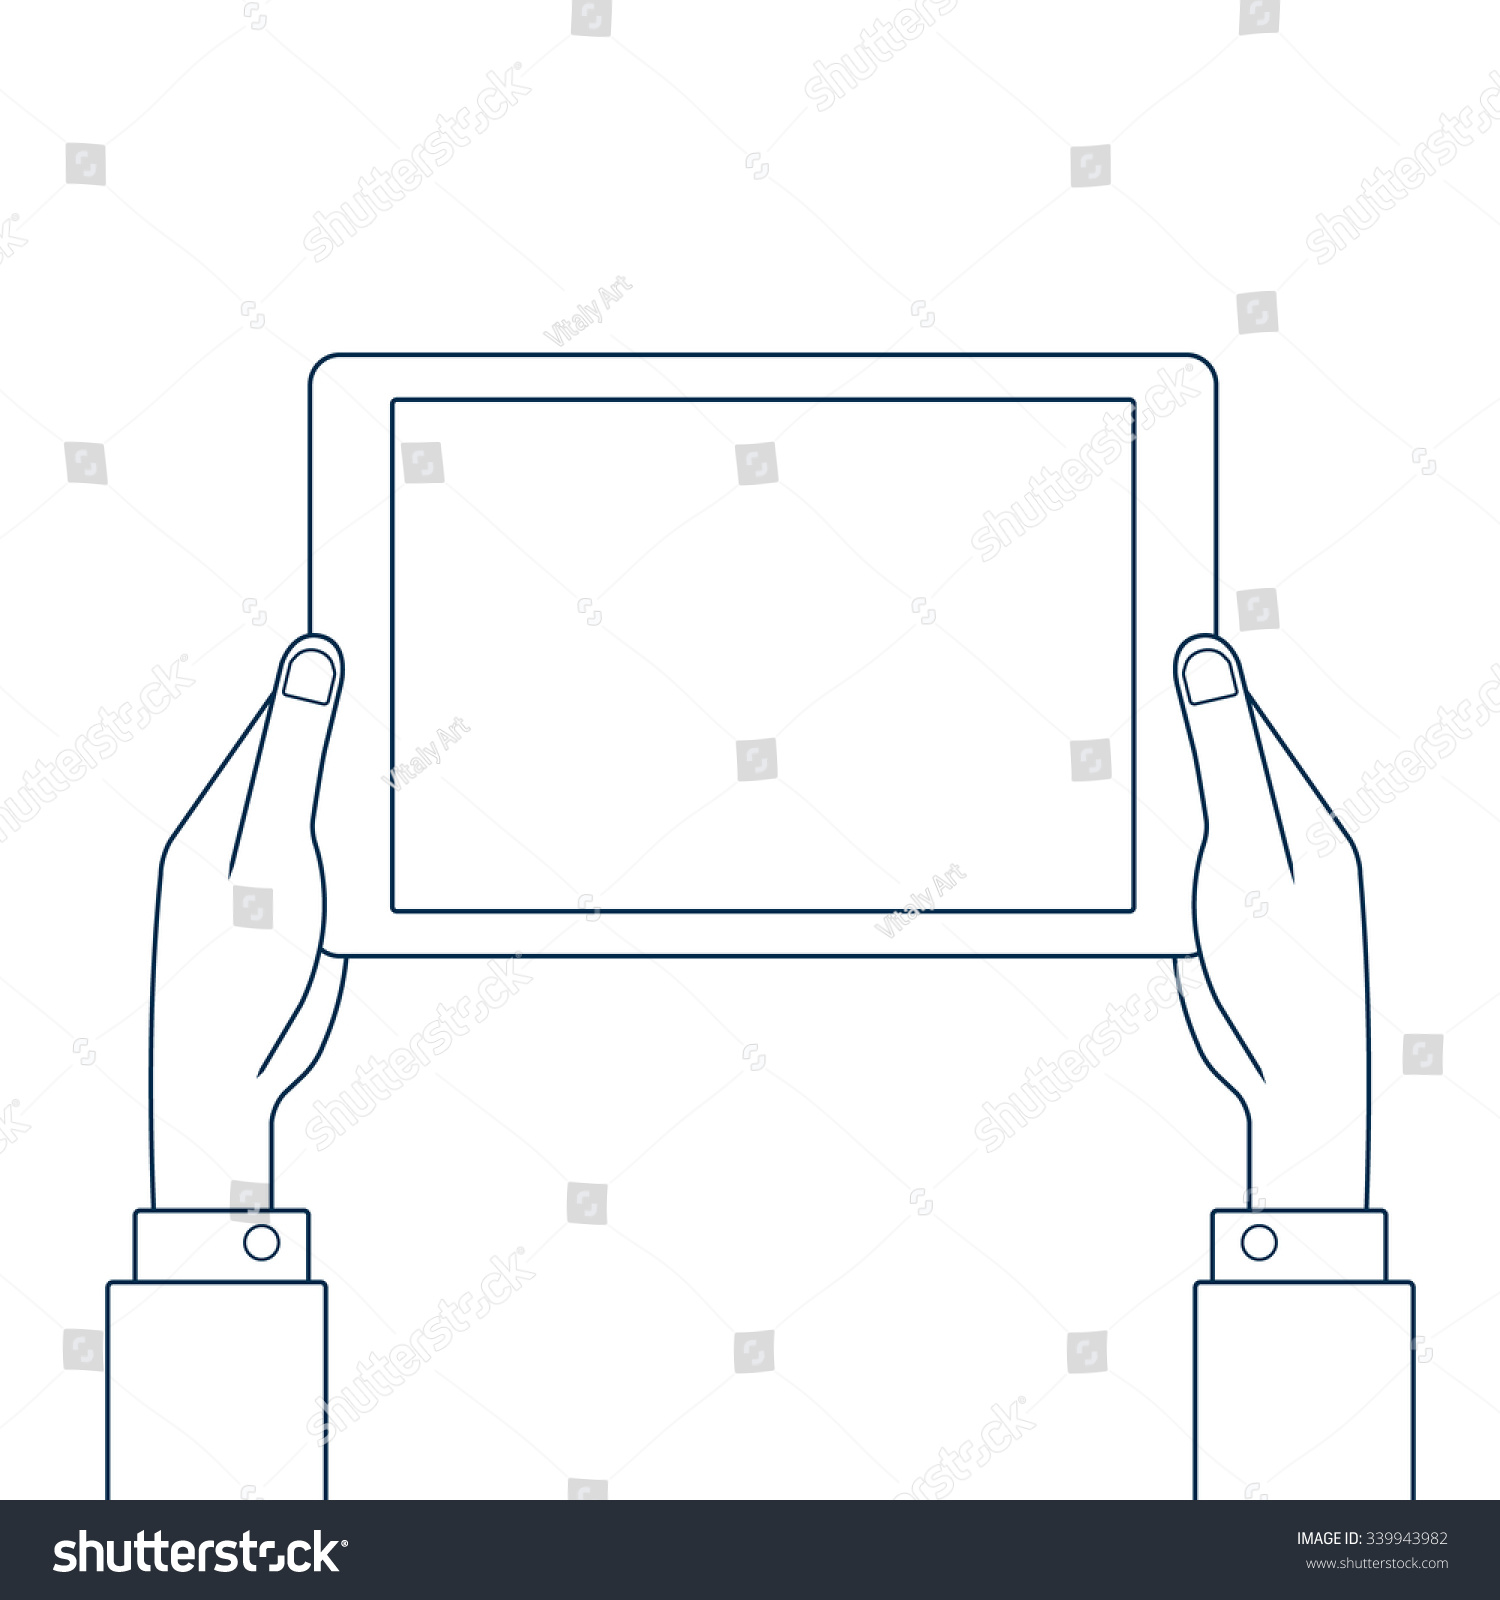 Drawing Smooth Lines In Photo With Tablet : Hands holding tablet pc line drawing stock vector